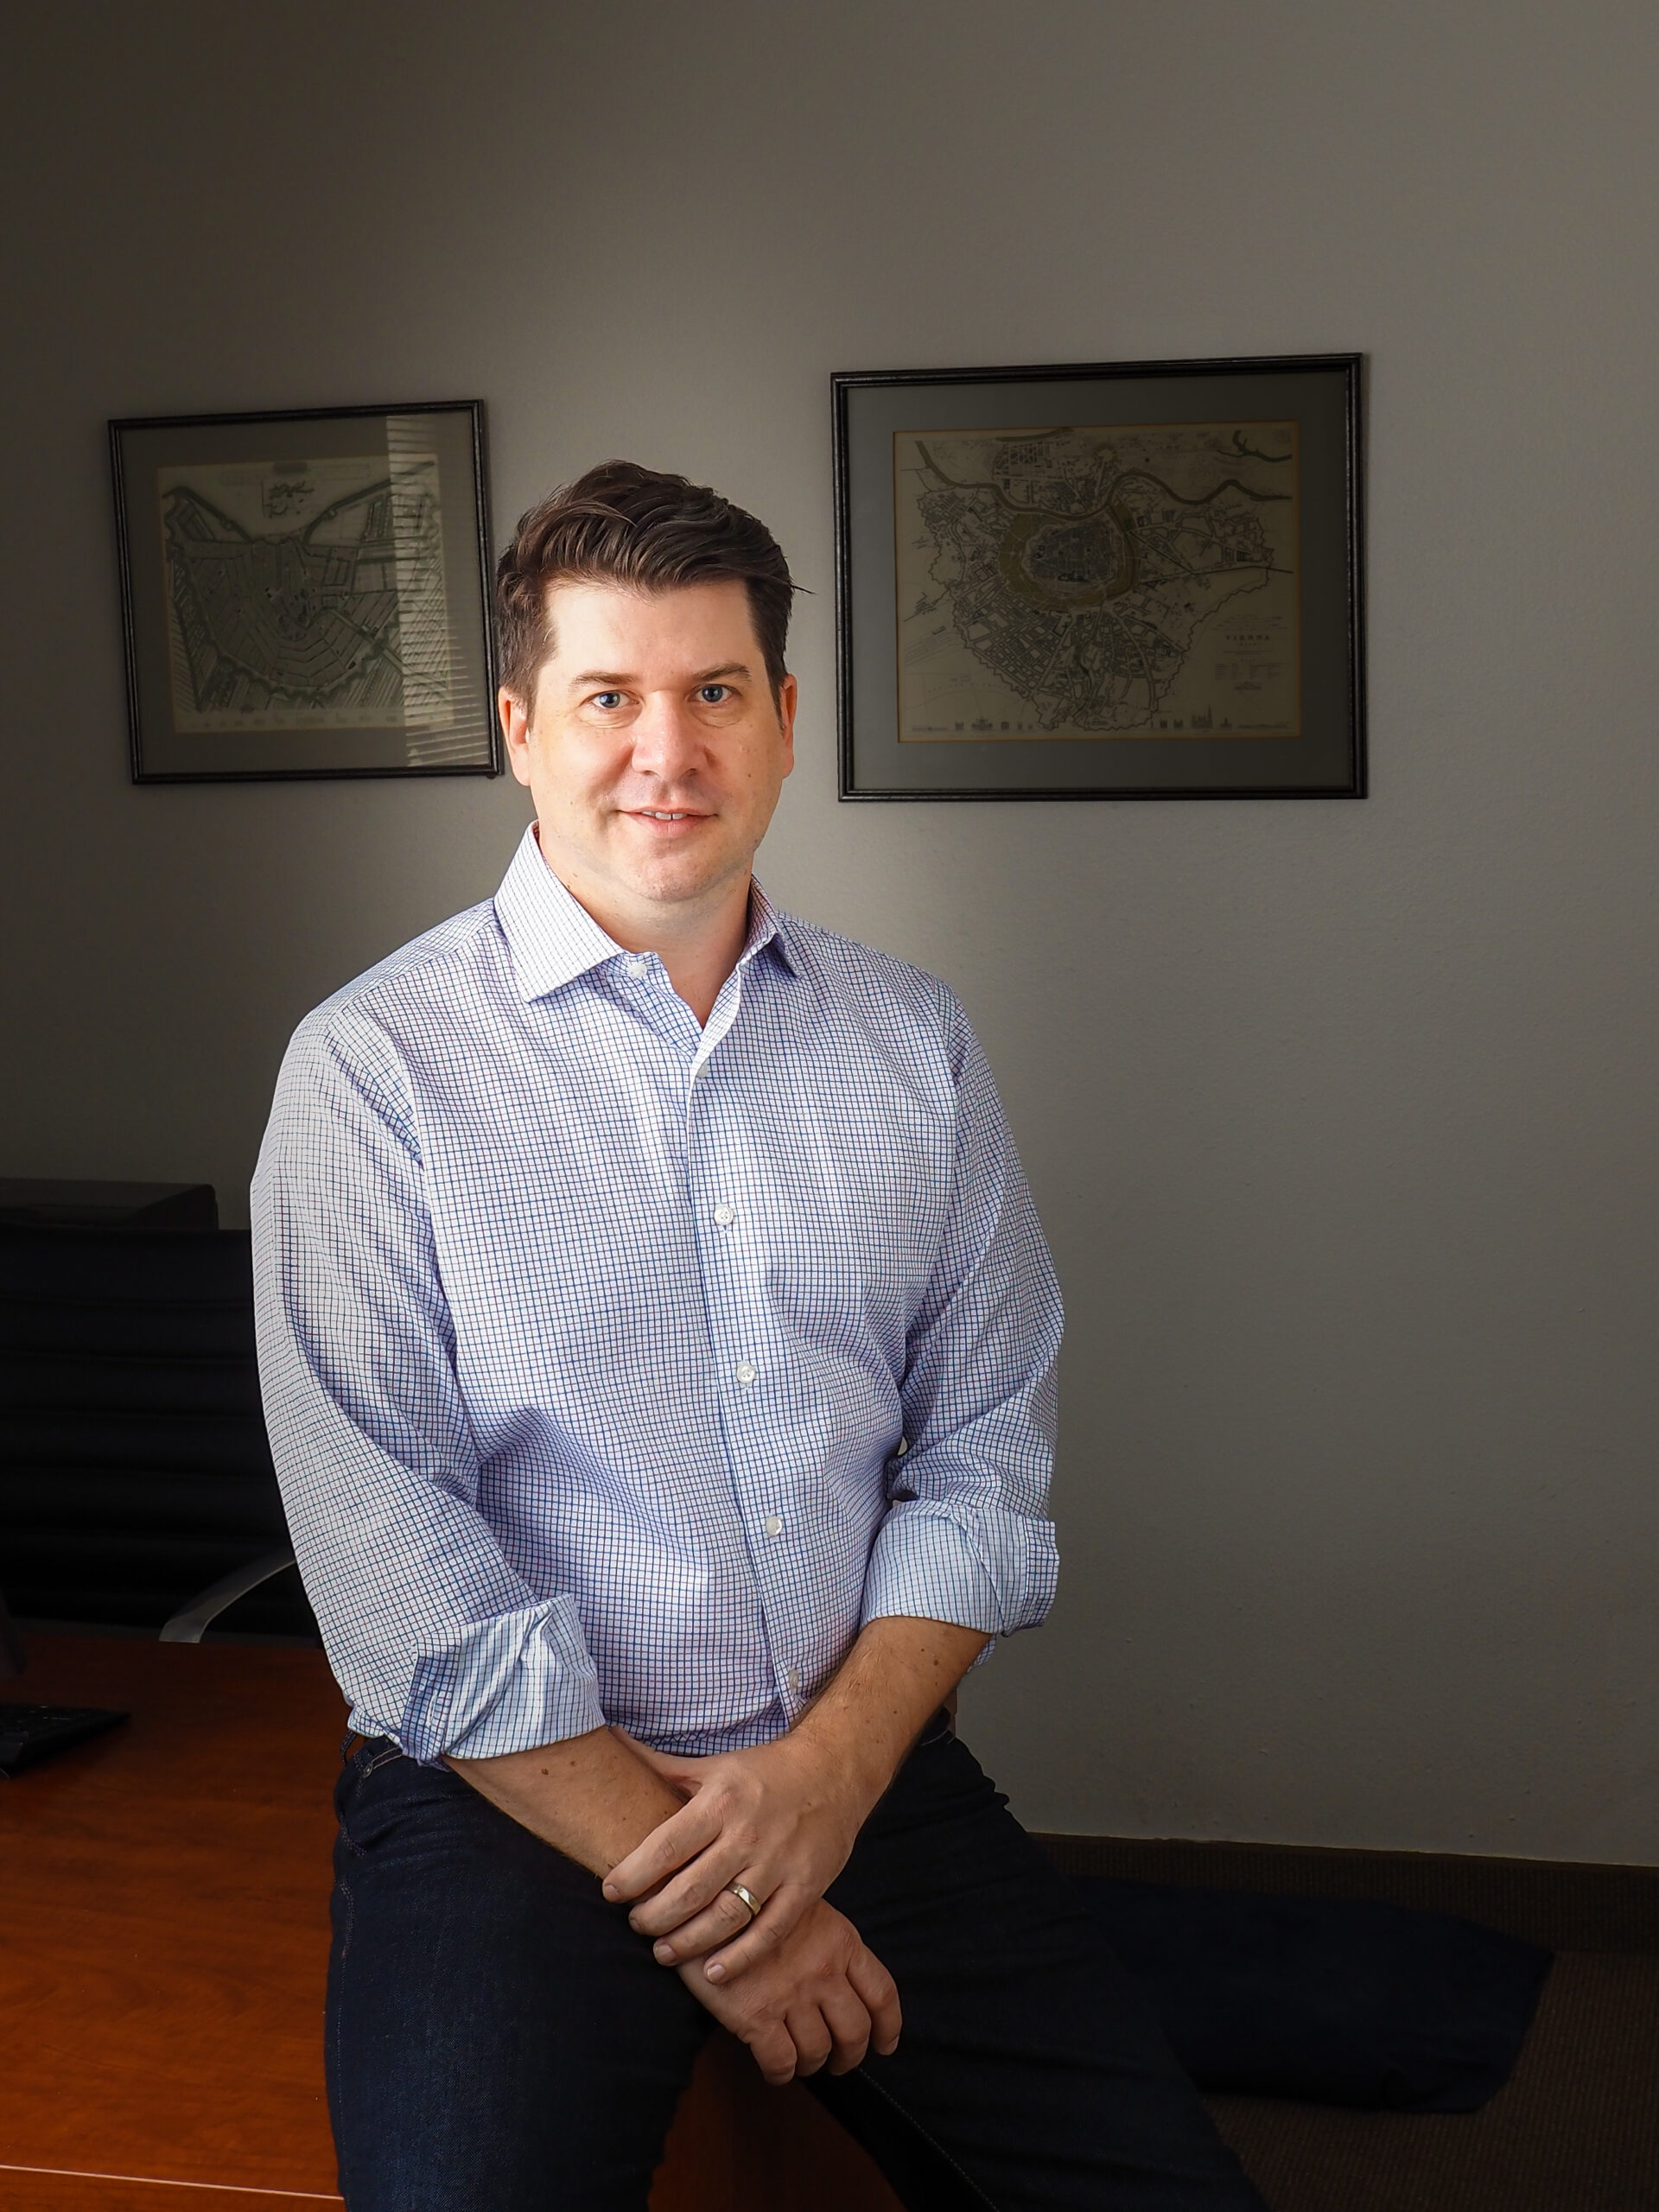 Jason Sellers (Broker/Owner) AXIS Property Advisors & AXIS Rents